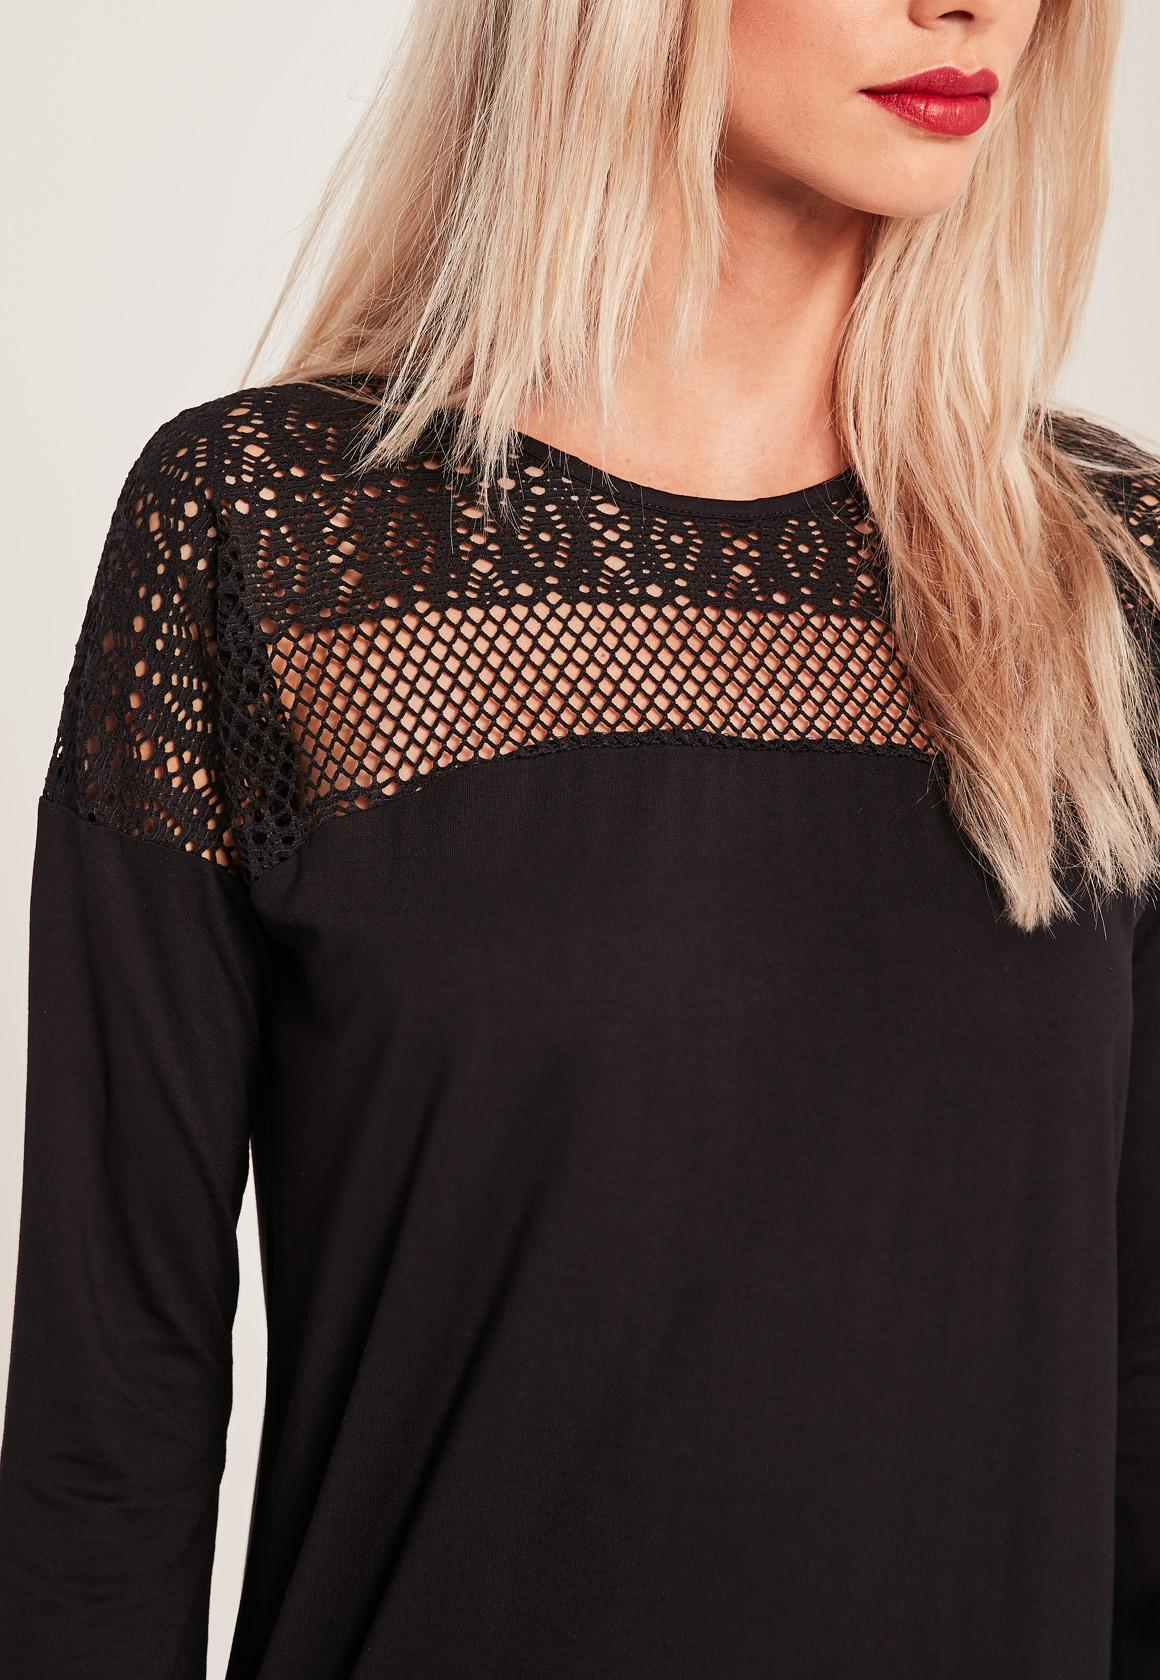 Black Lace Insert Top Long Sleeve Dress